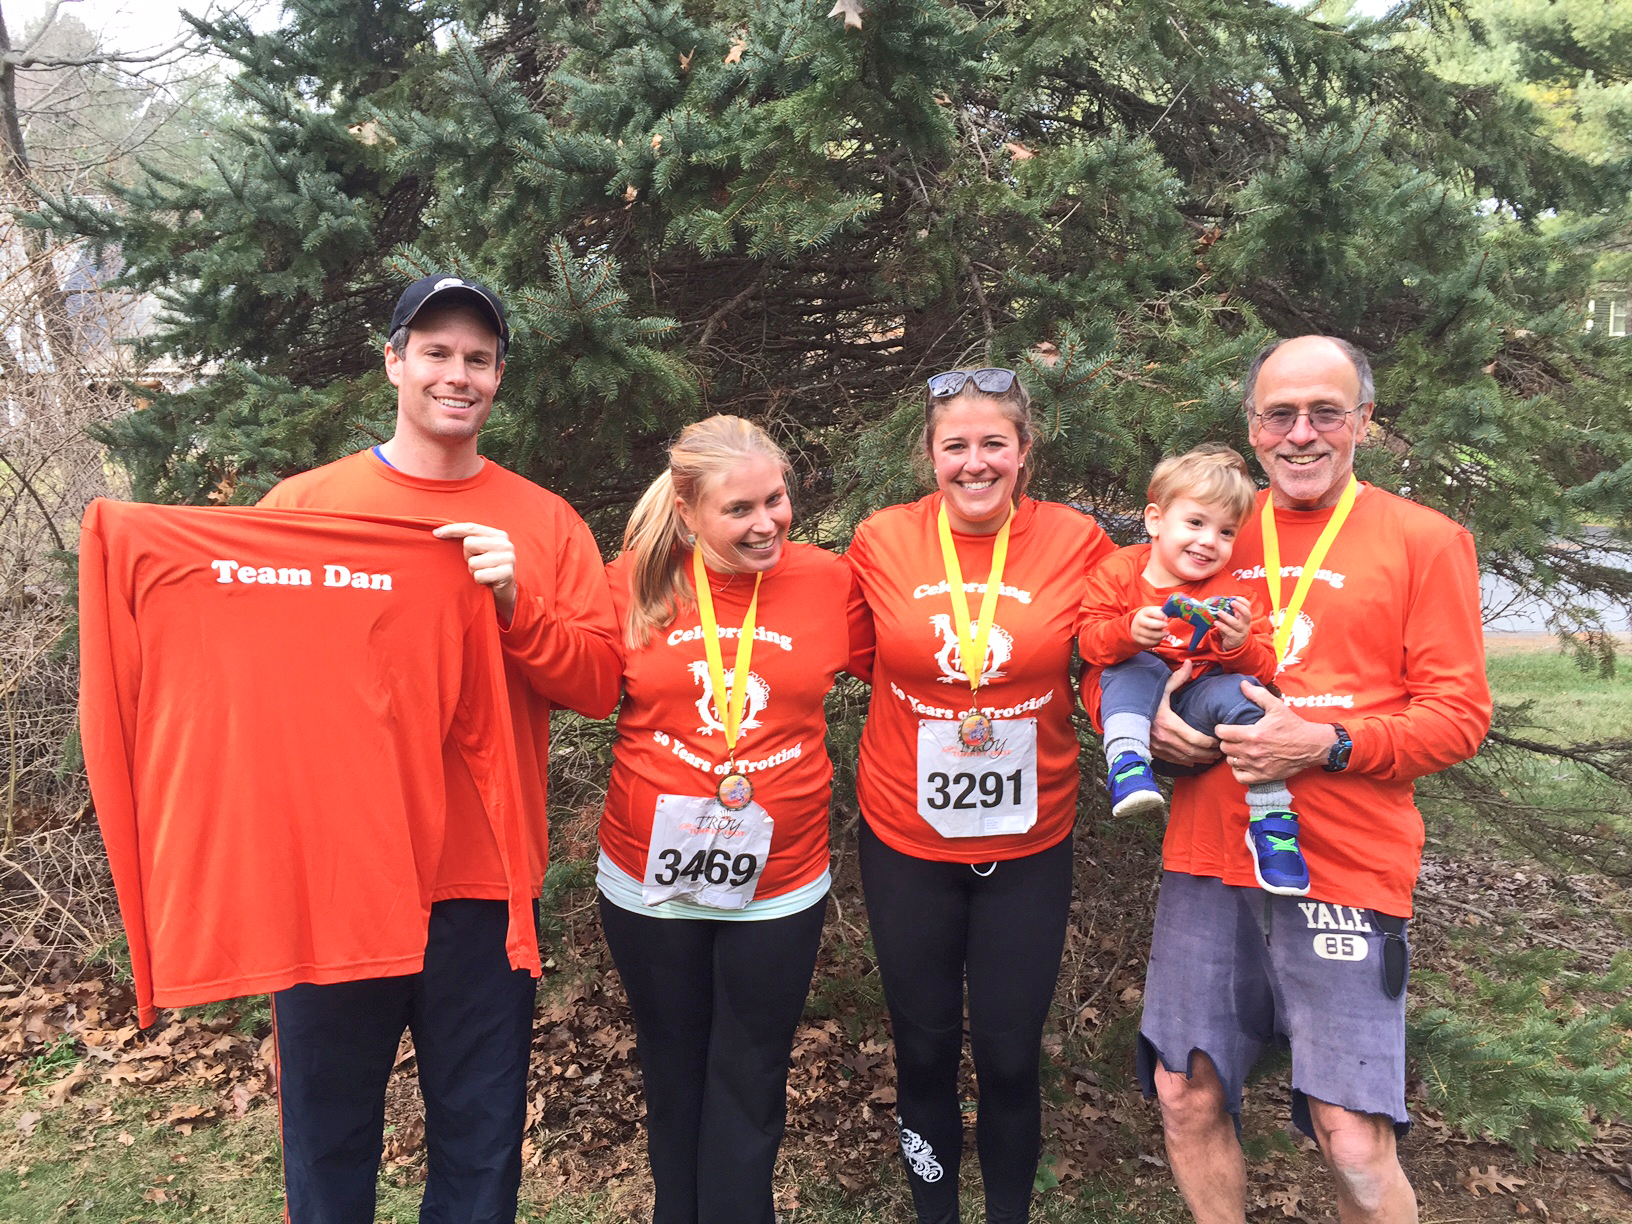 Turkey Trot/Thanksgiving 2016: Adam, Sunny, Nell, Brant and Dan.